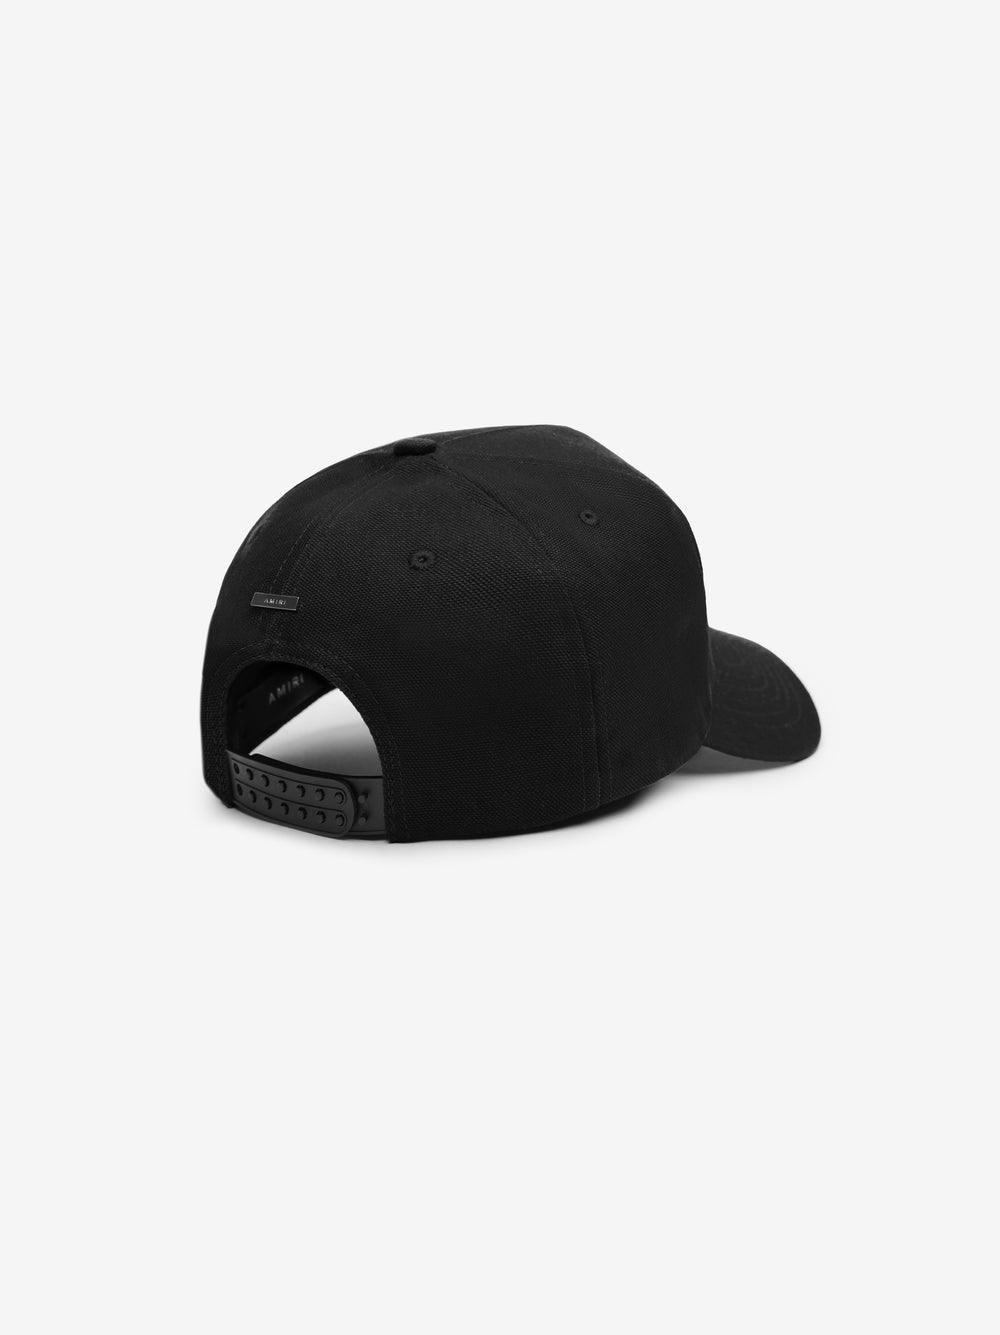 M.A. FULL CANVAS HAT - Black / White